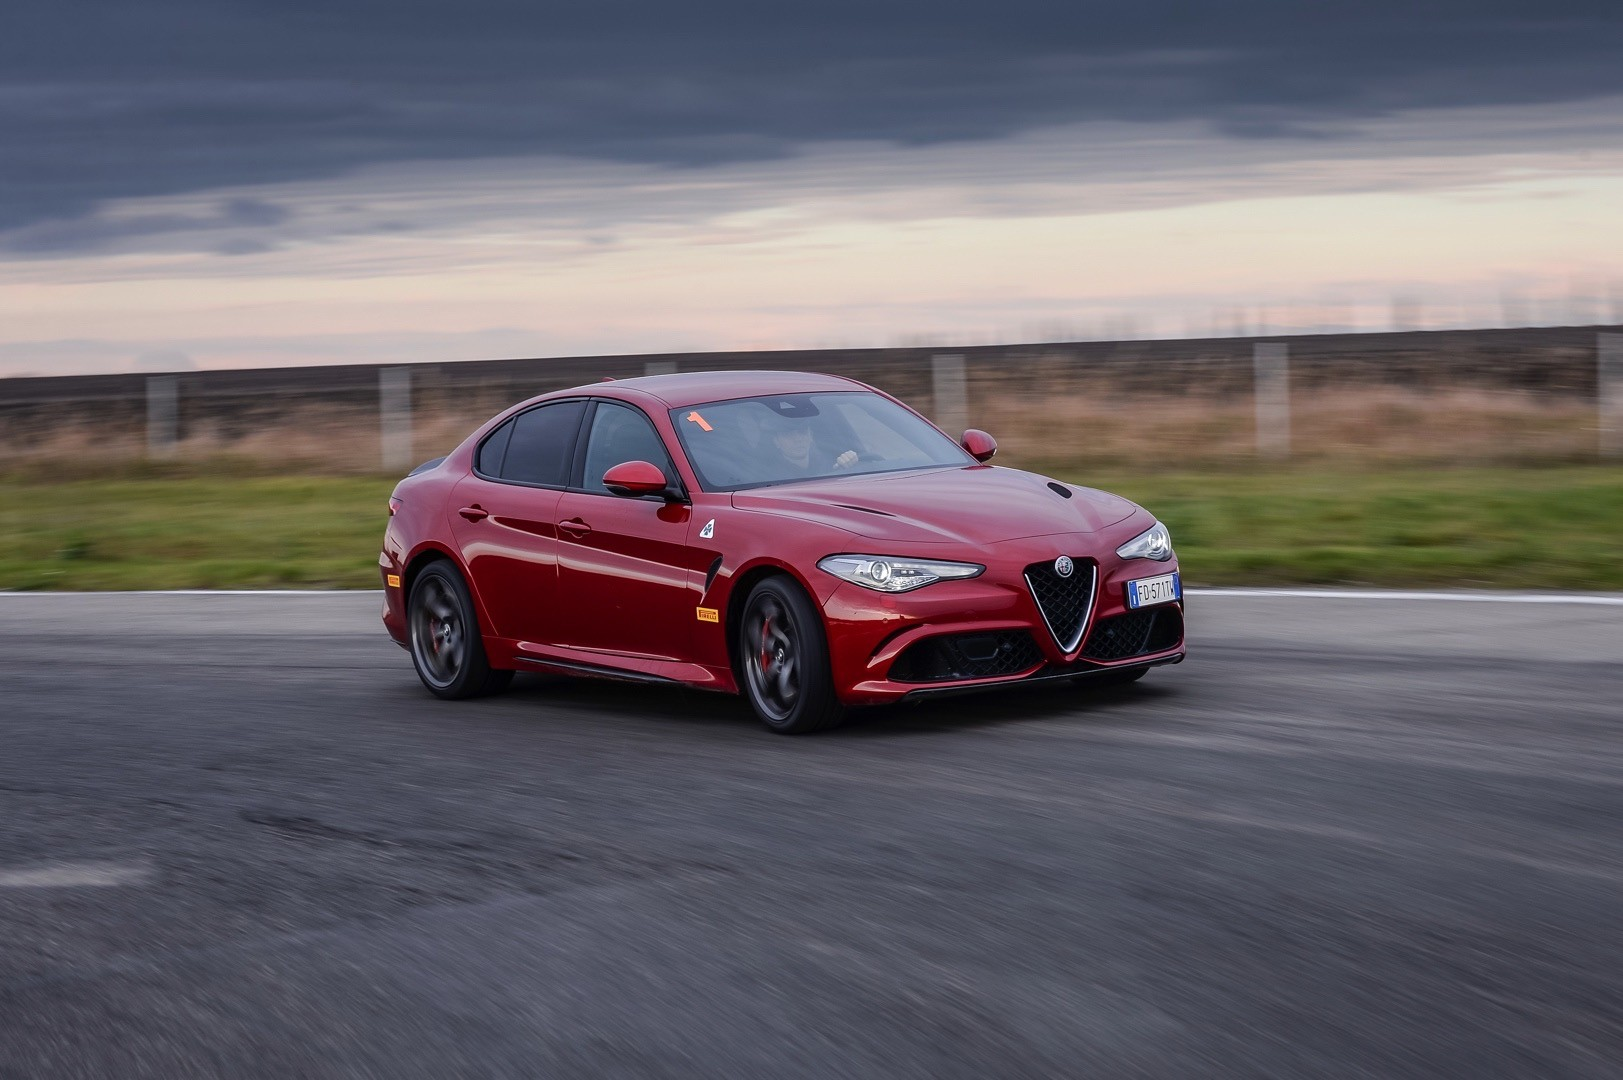 2018 alfa romeo giulia quadrifoglio adds more standard kit gets more expensive autoevolution. Black Bedroom Furniture Sets. Home Design Ideas